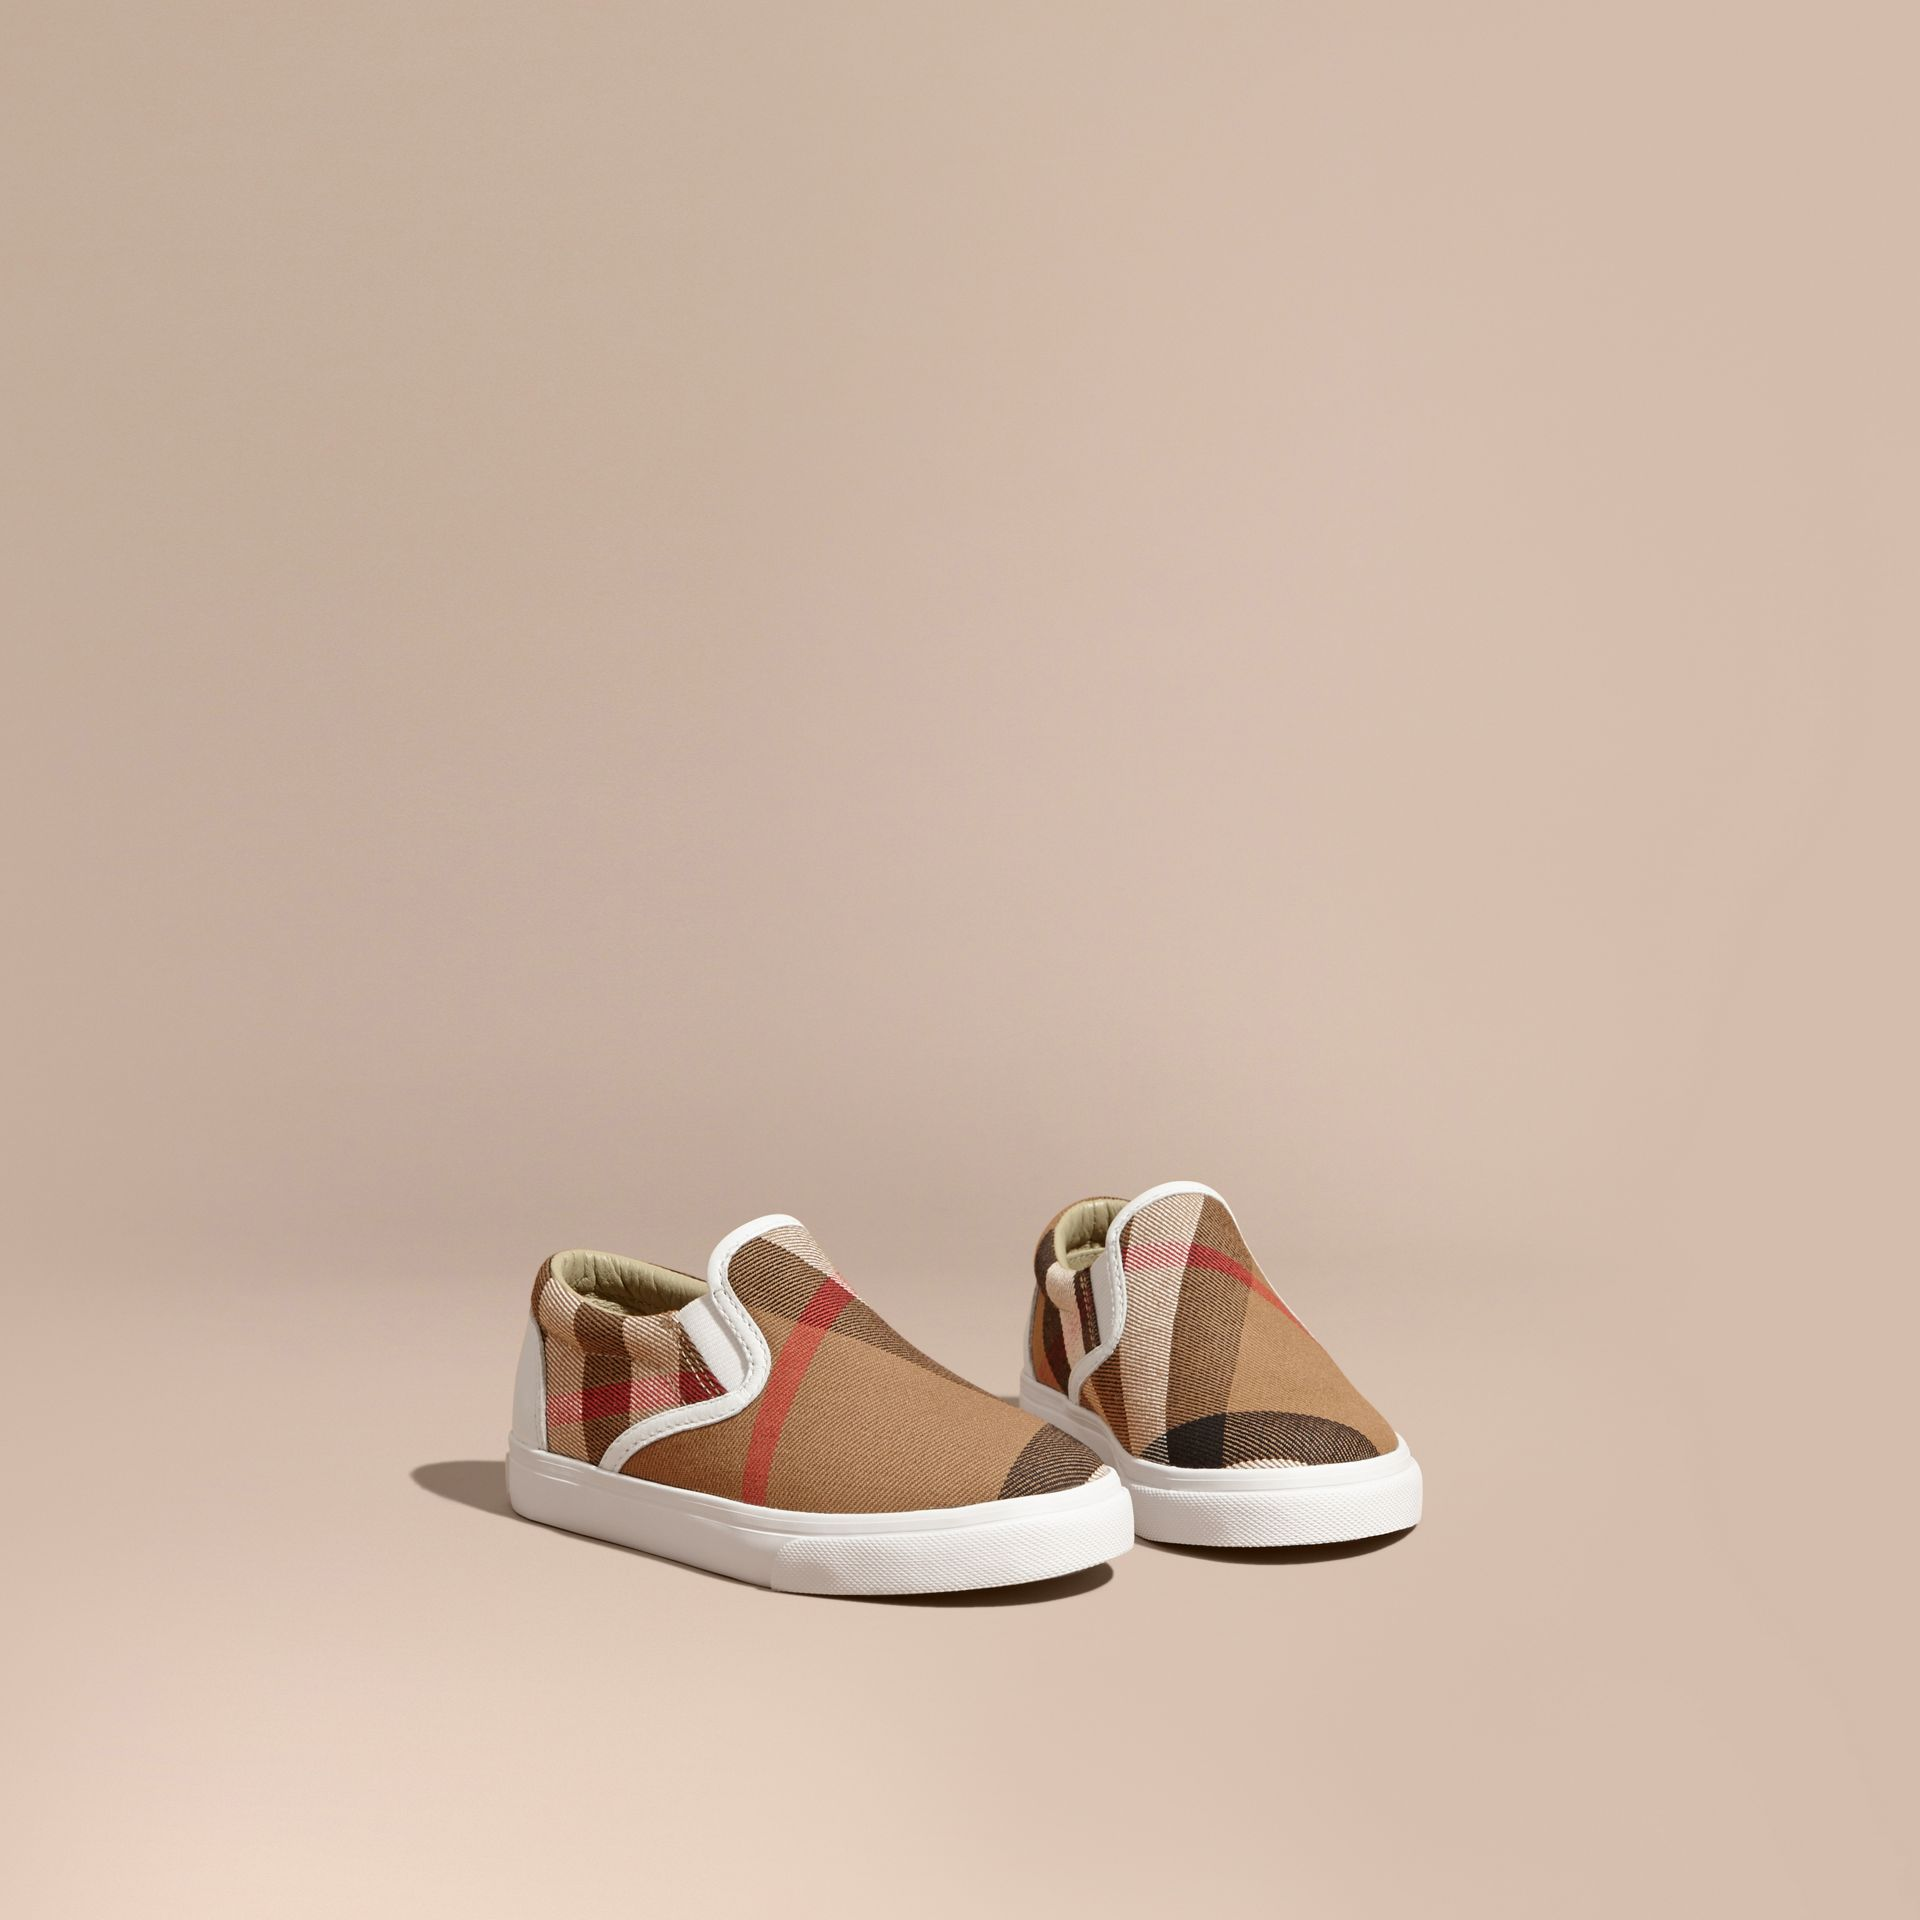 House Check Cotton Slip-On Trainers in White | Burberry United States - gallery image 1